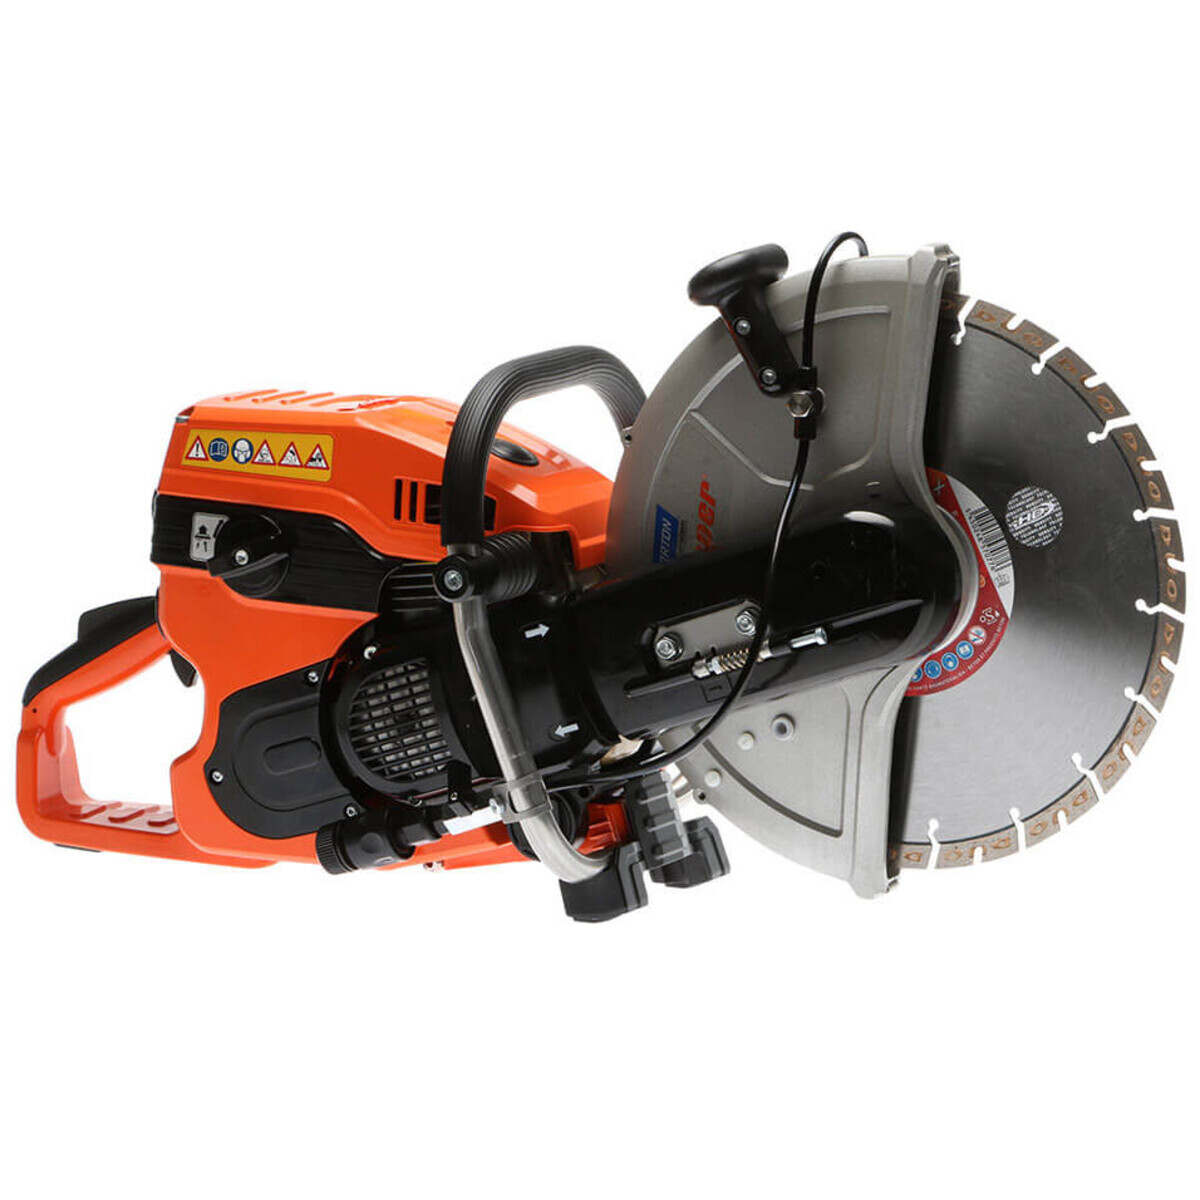 Clipper CP514-350 Power Cutter with Diamond Blade